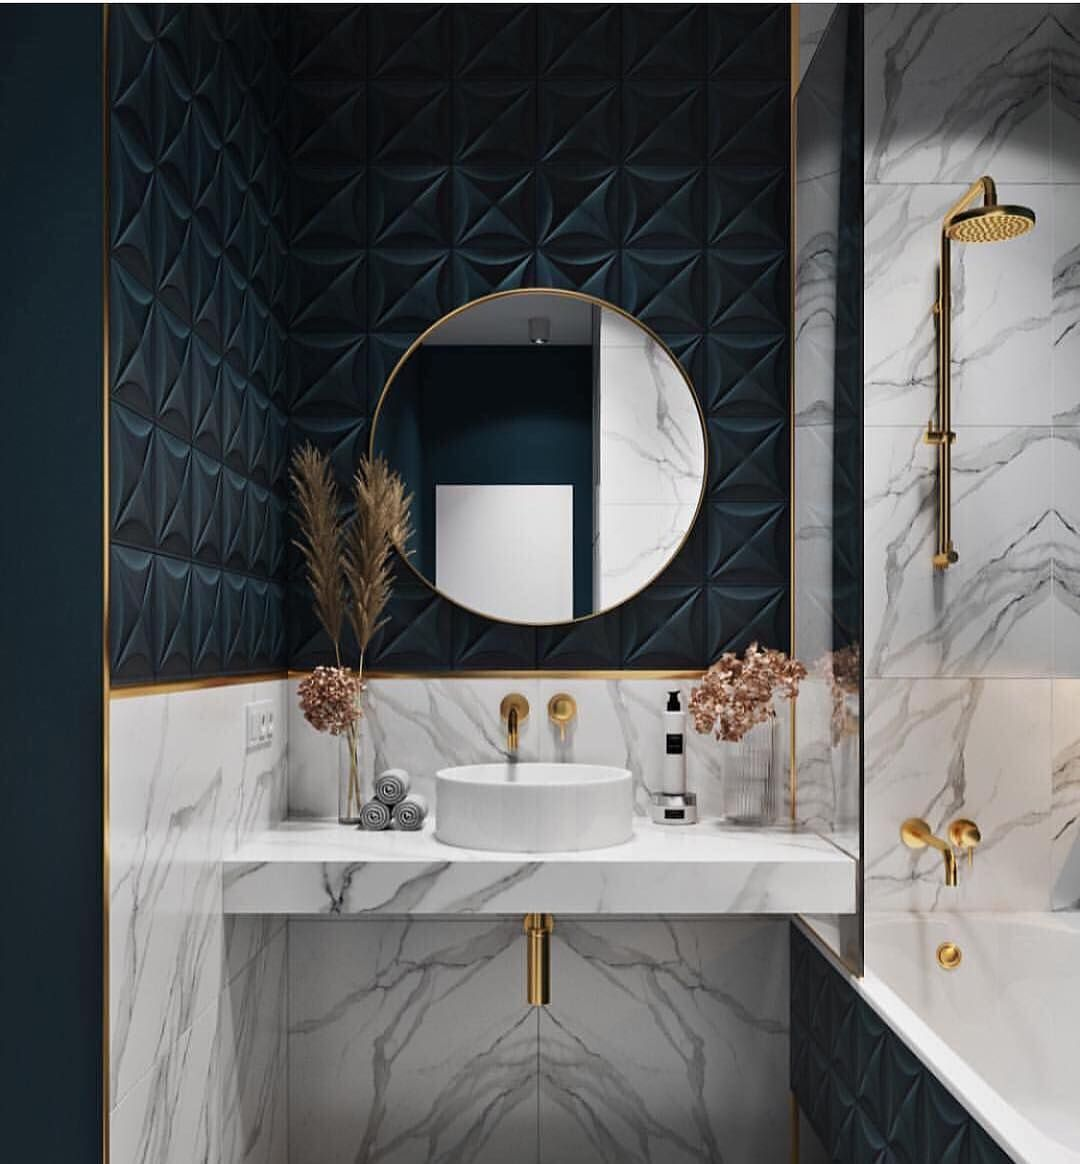 Full Time Design On Instagram When Midnight Blue And Marble Collide Korolev Design Ashleytst Bathroom Interior Design Bathroom Design Gorgeous Bathroom